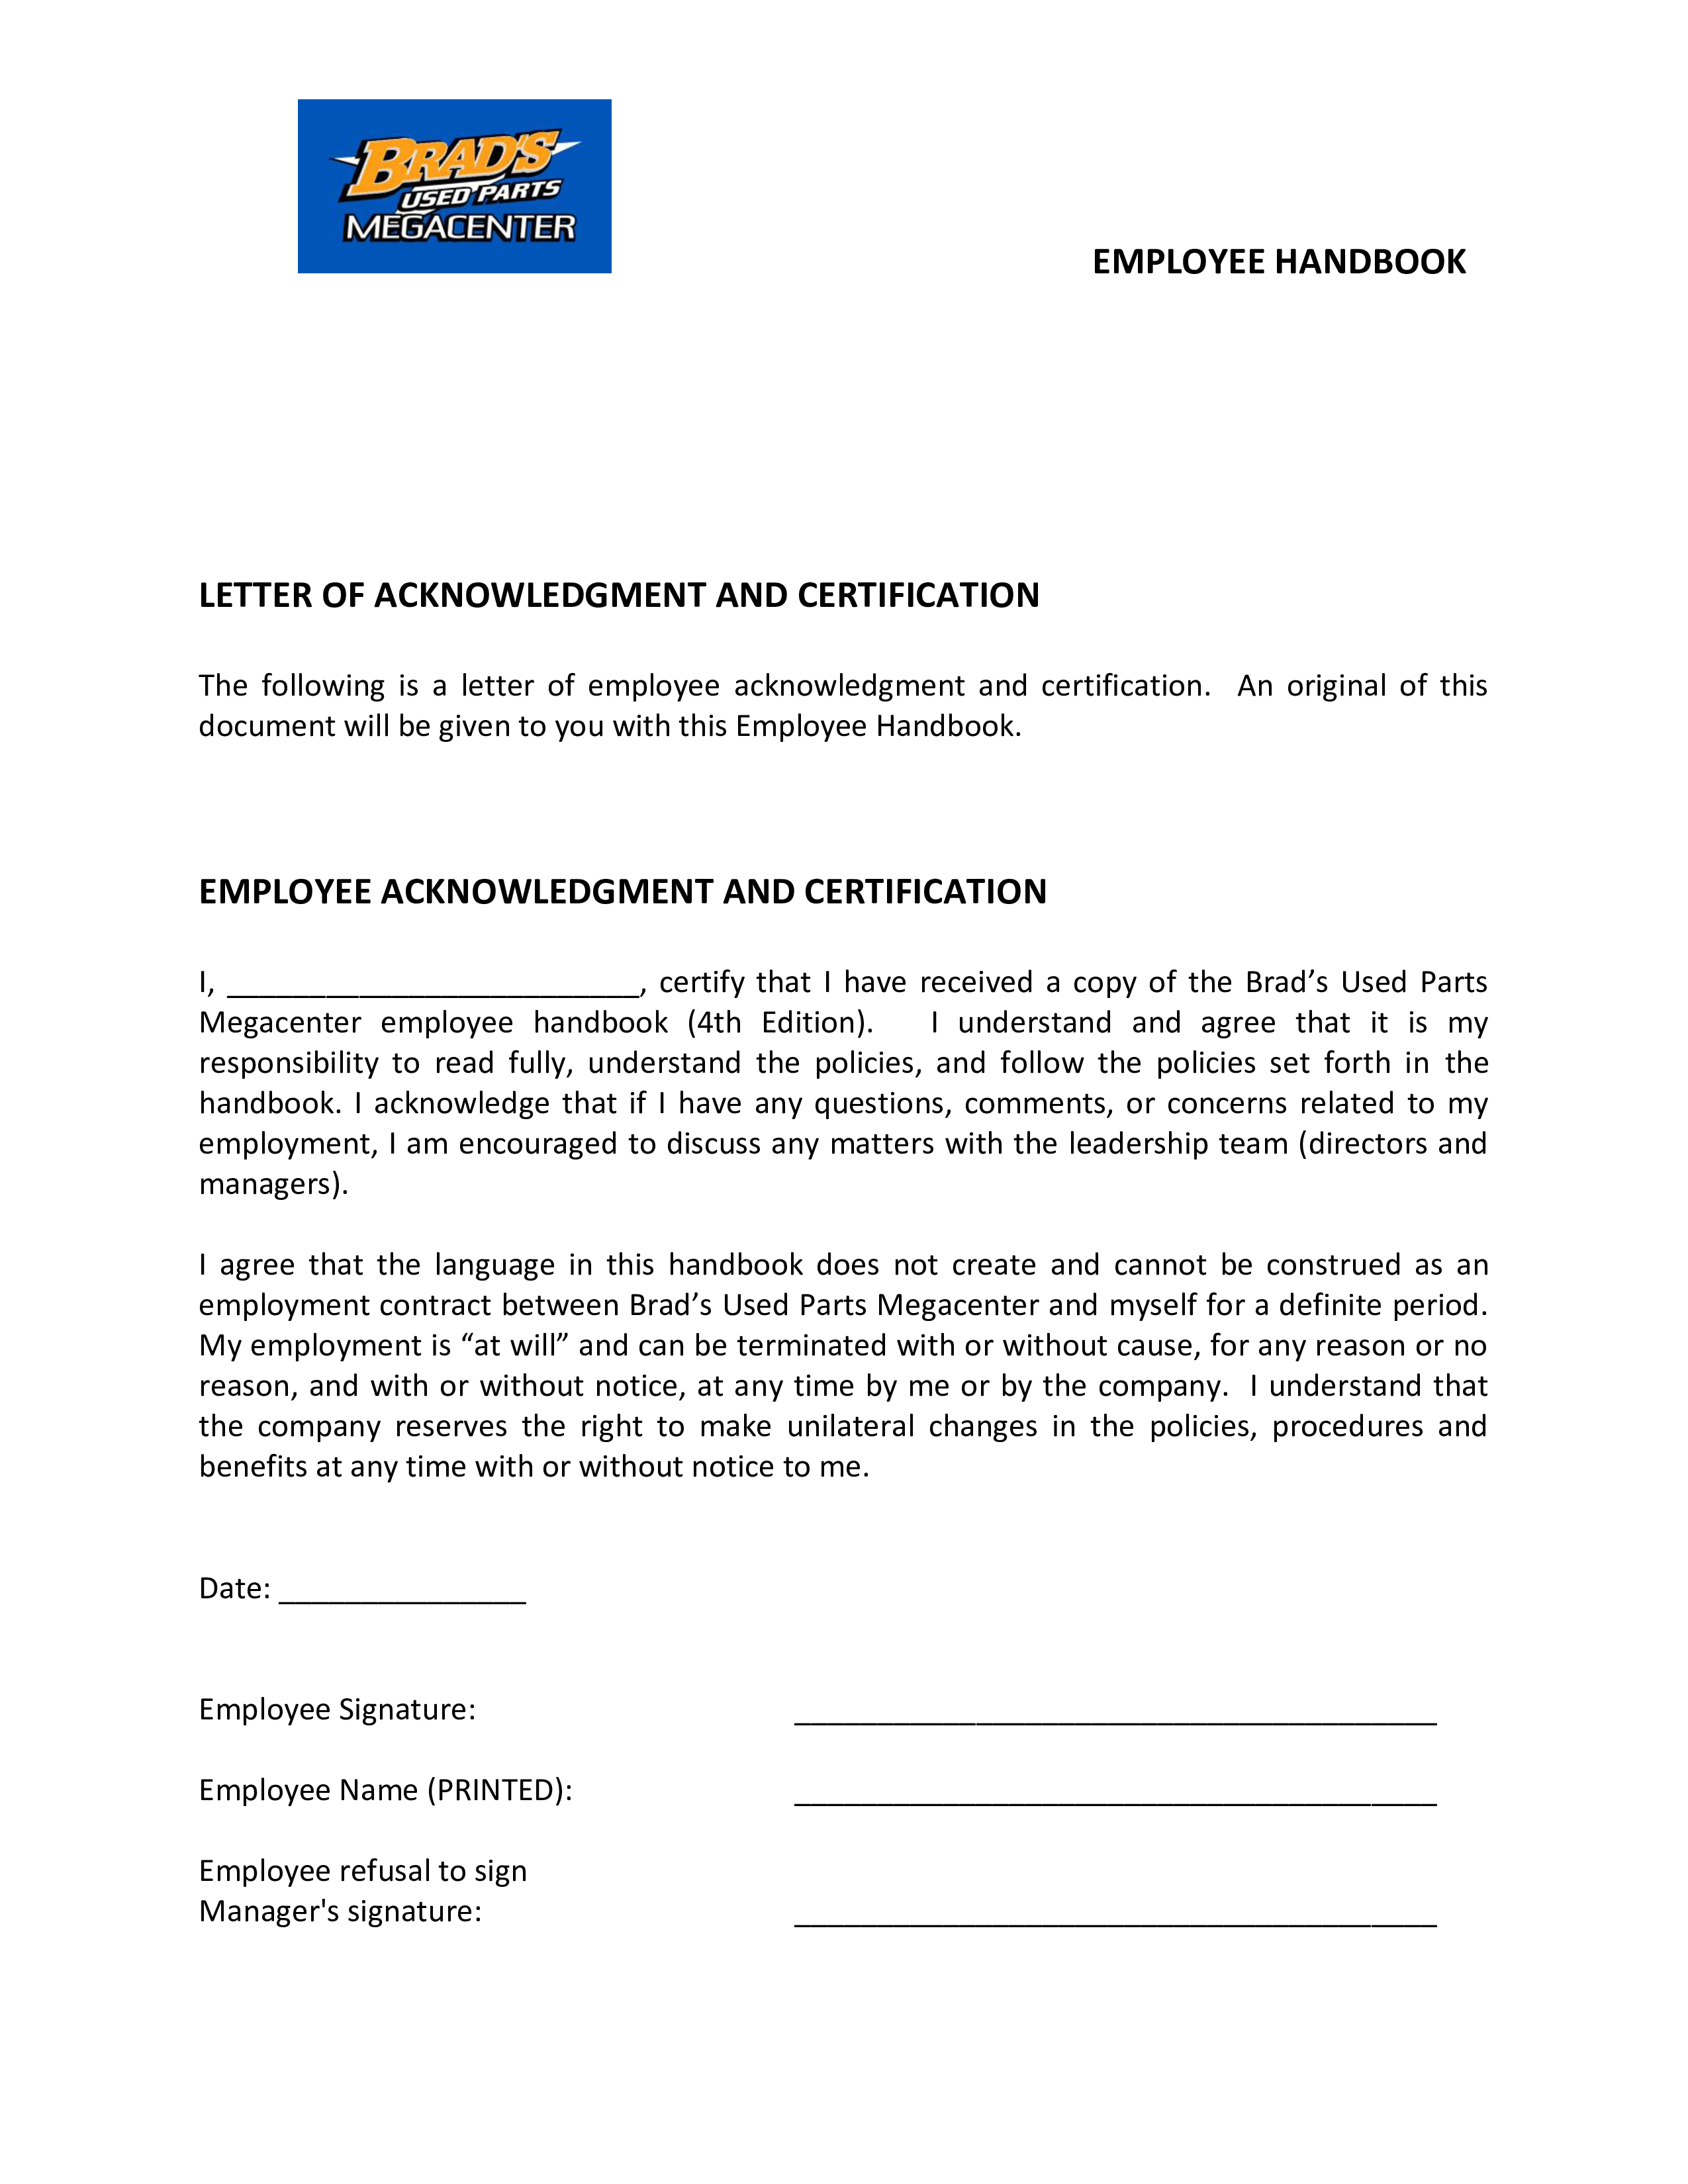 Employee Handbook Acknowledgement Letter main image